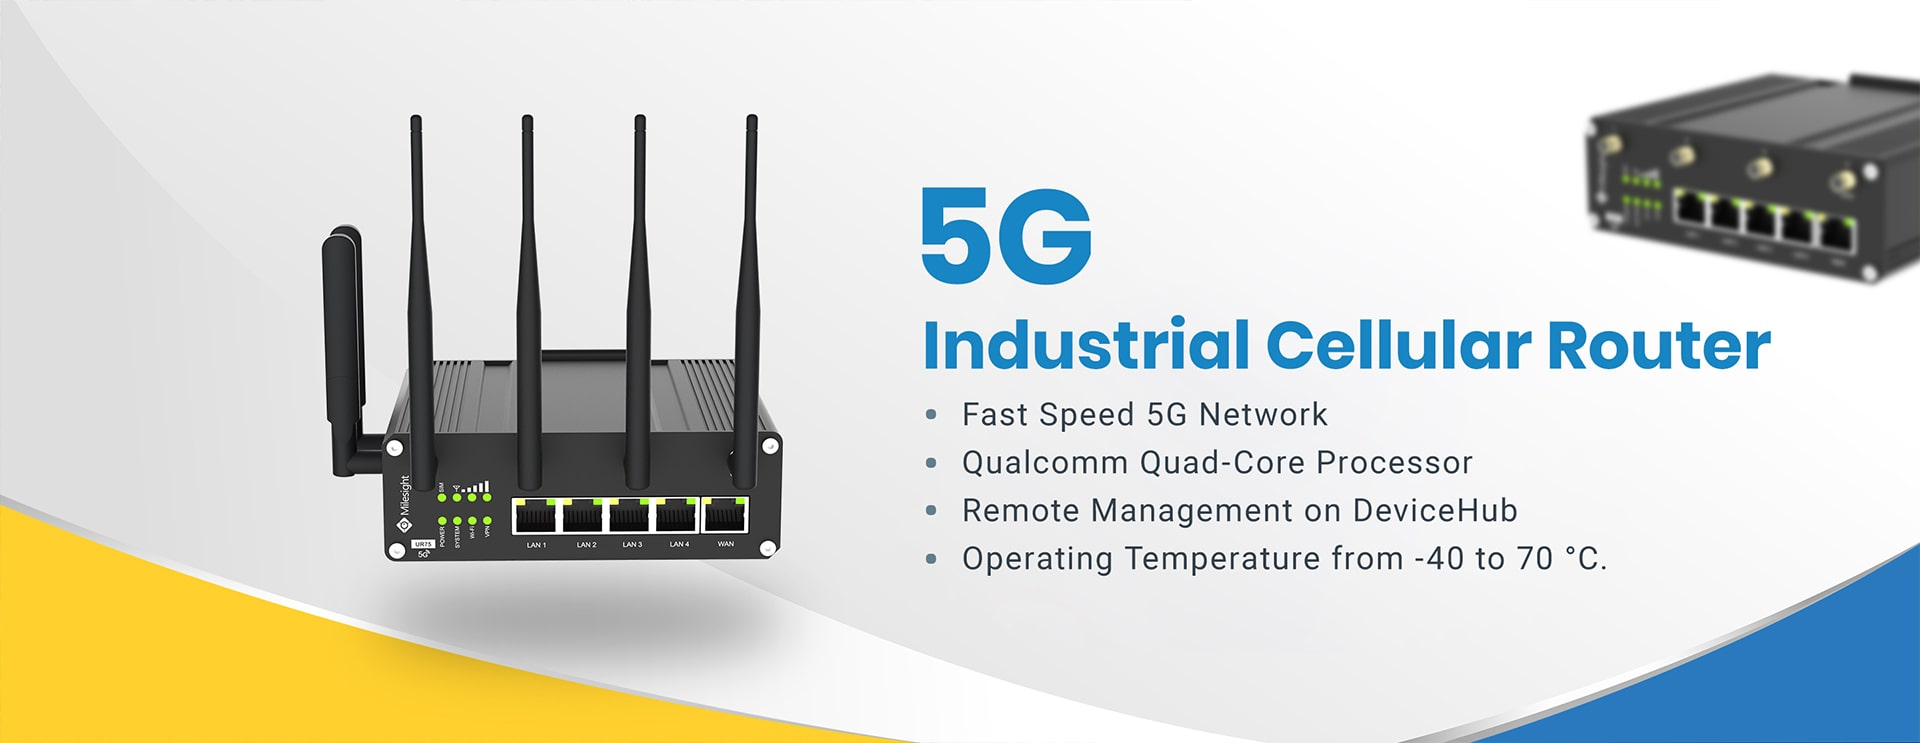 5g-router-banner